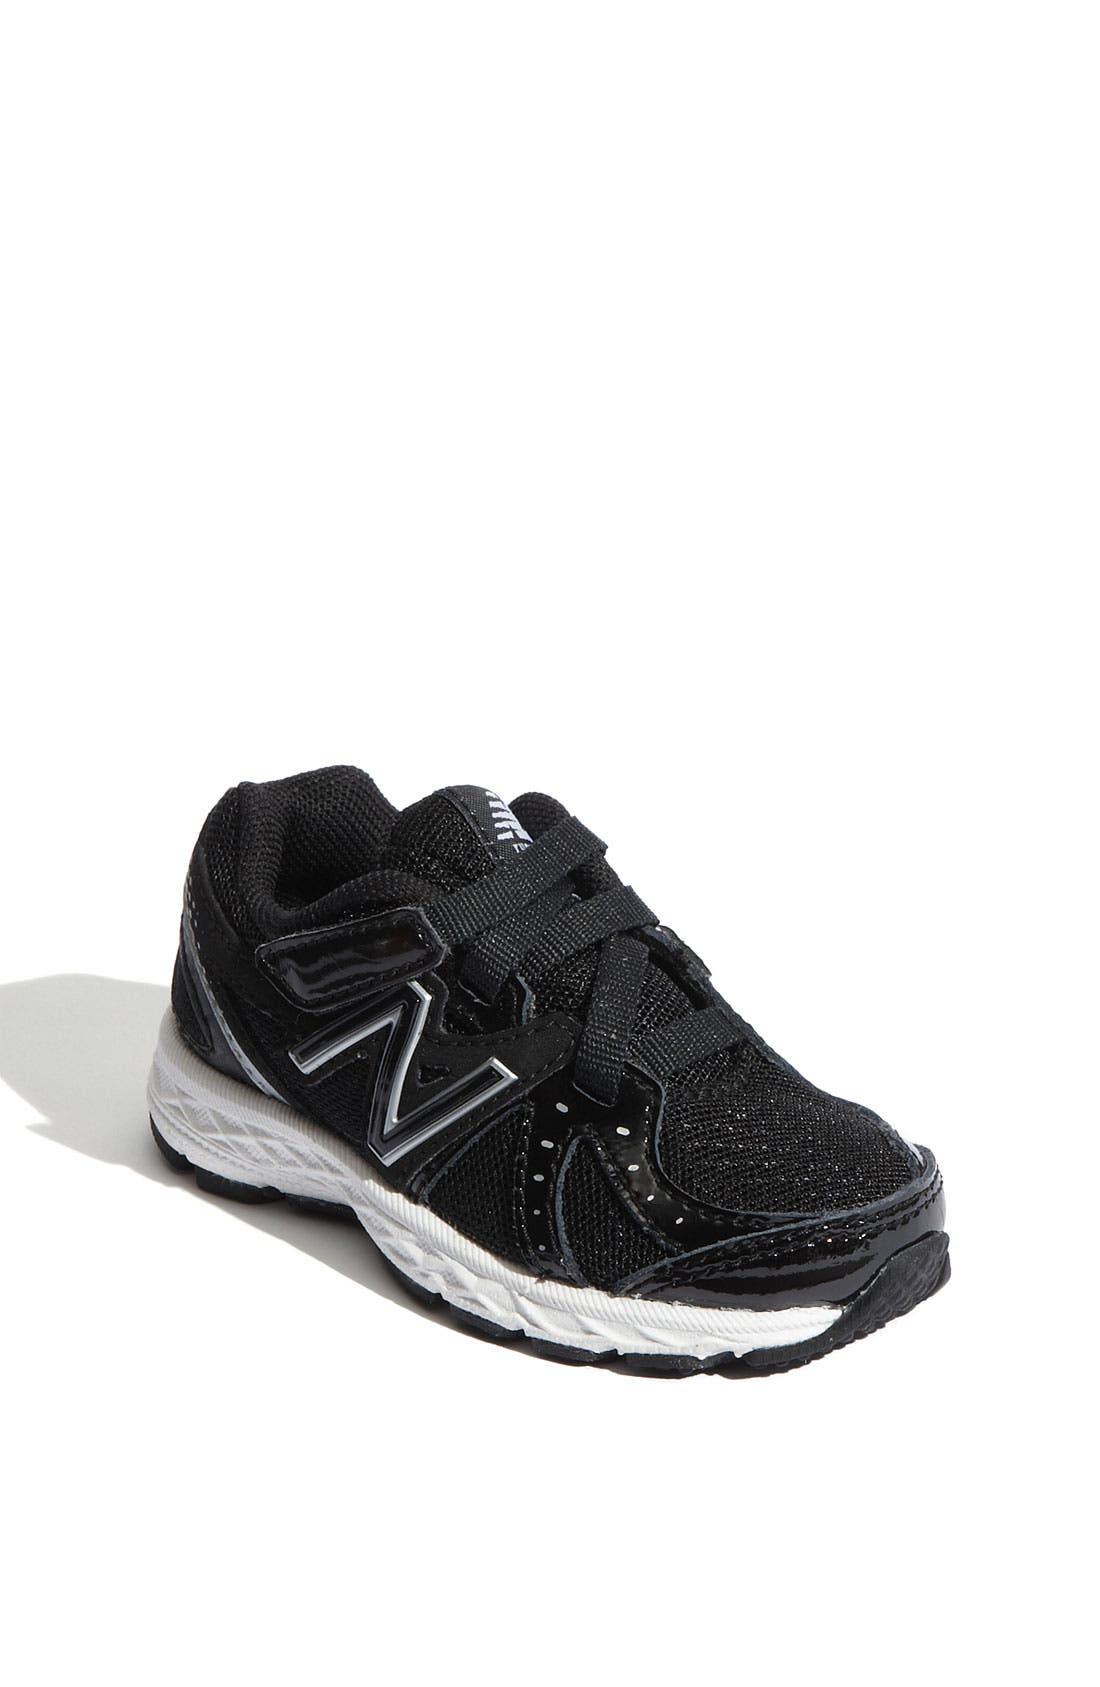 Alternate Image 1 Selected - New Balance '790' Running Shoe (Baby, Walker & Toddler)